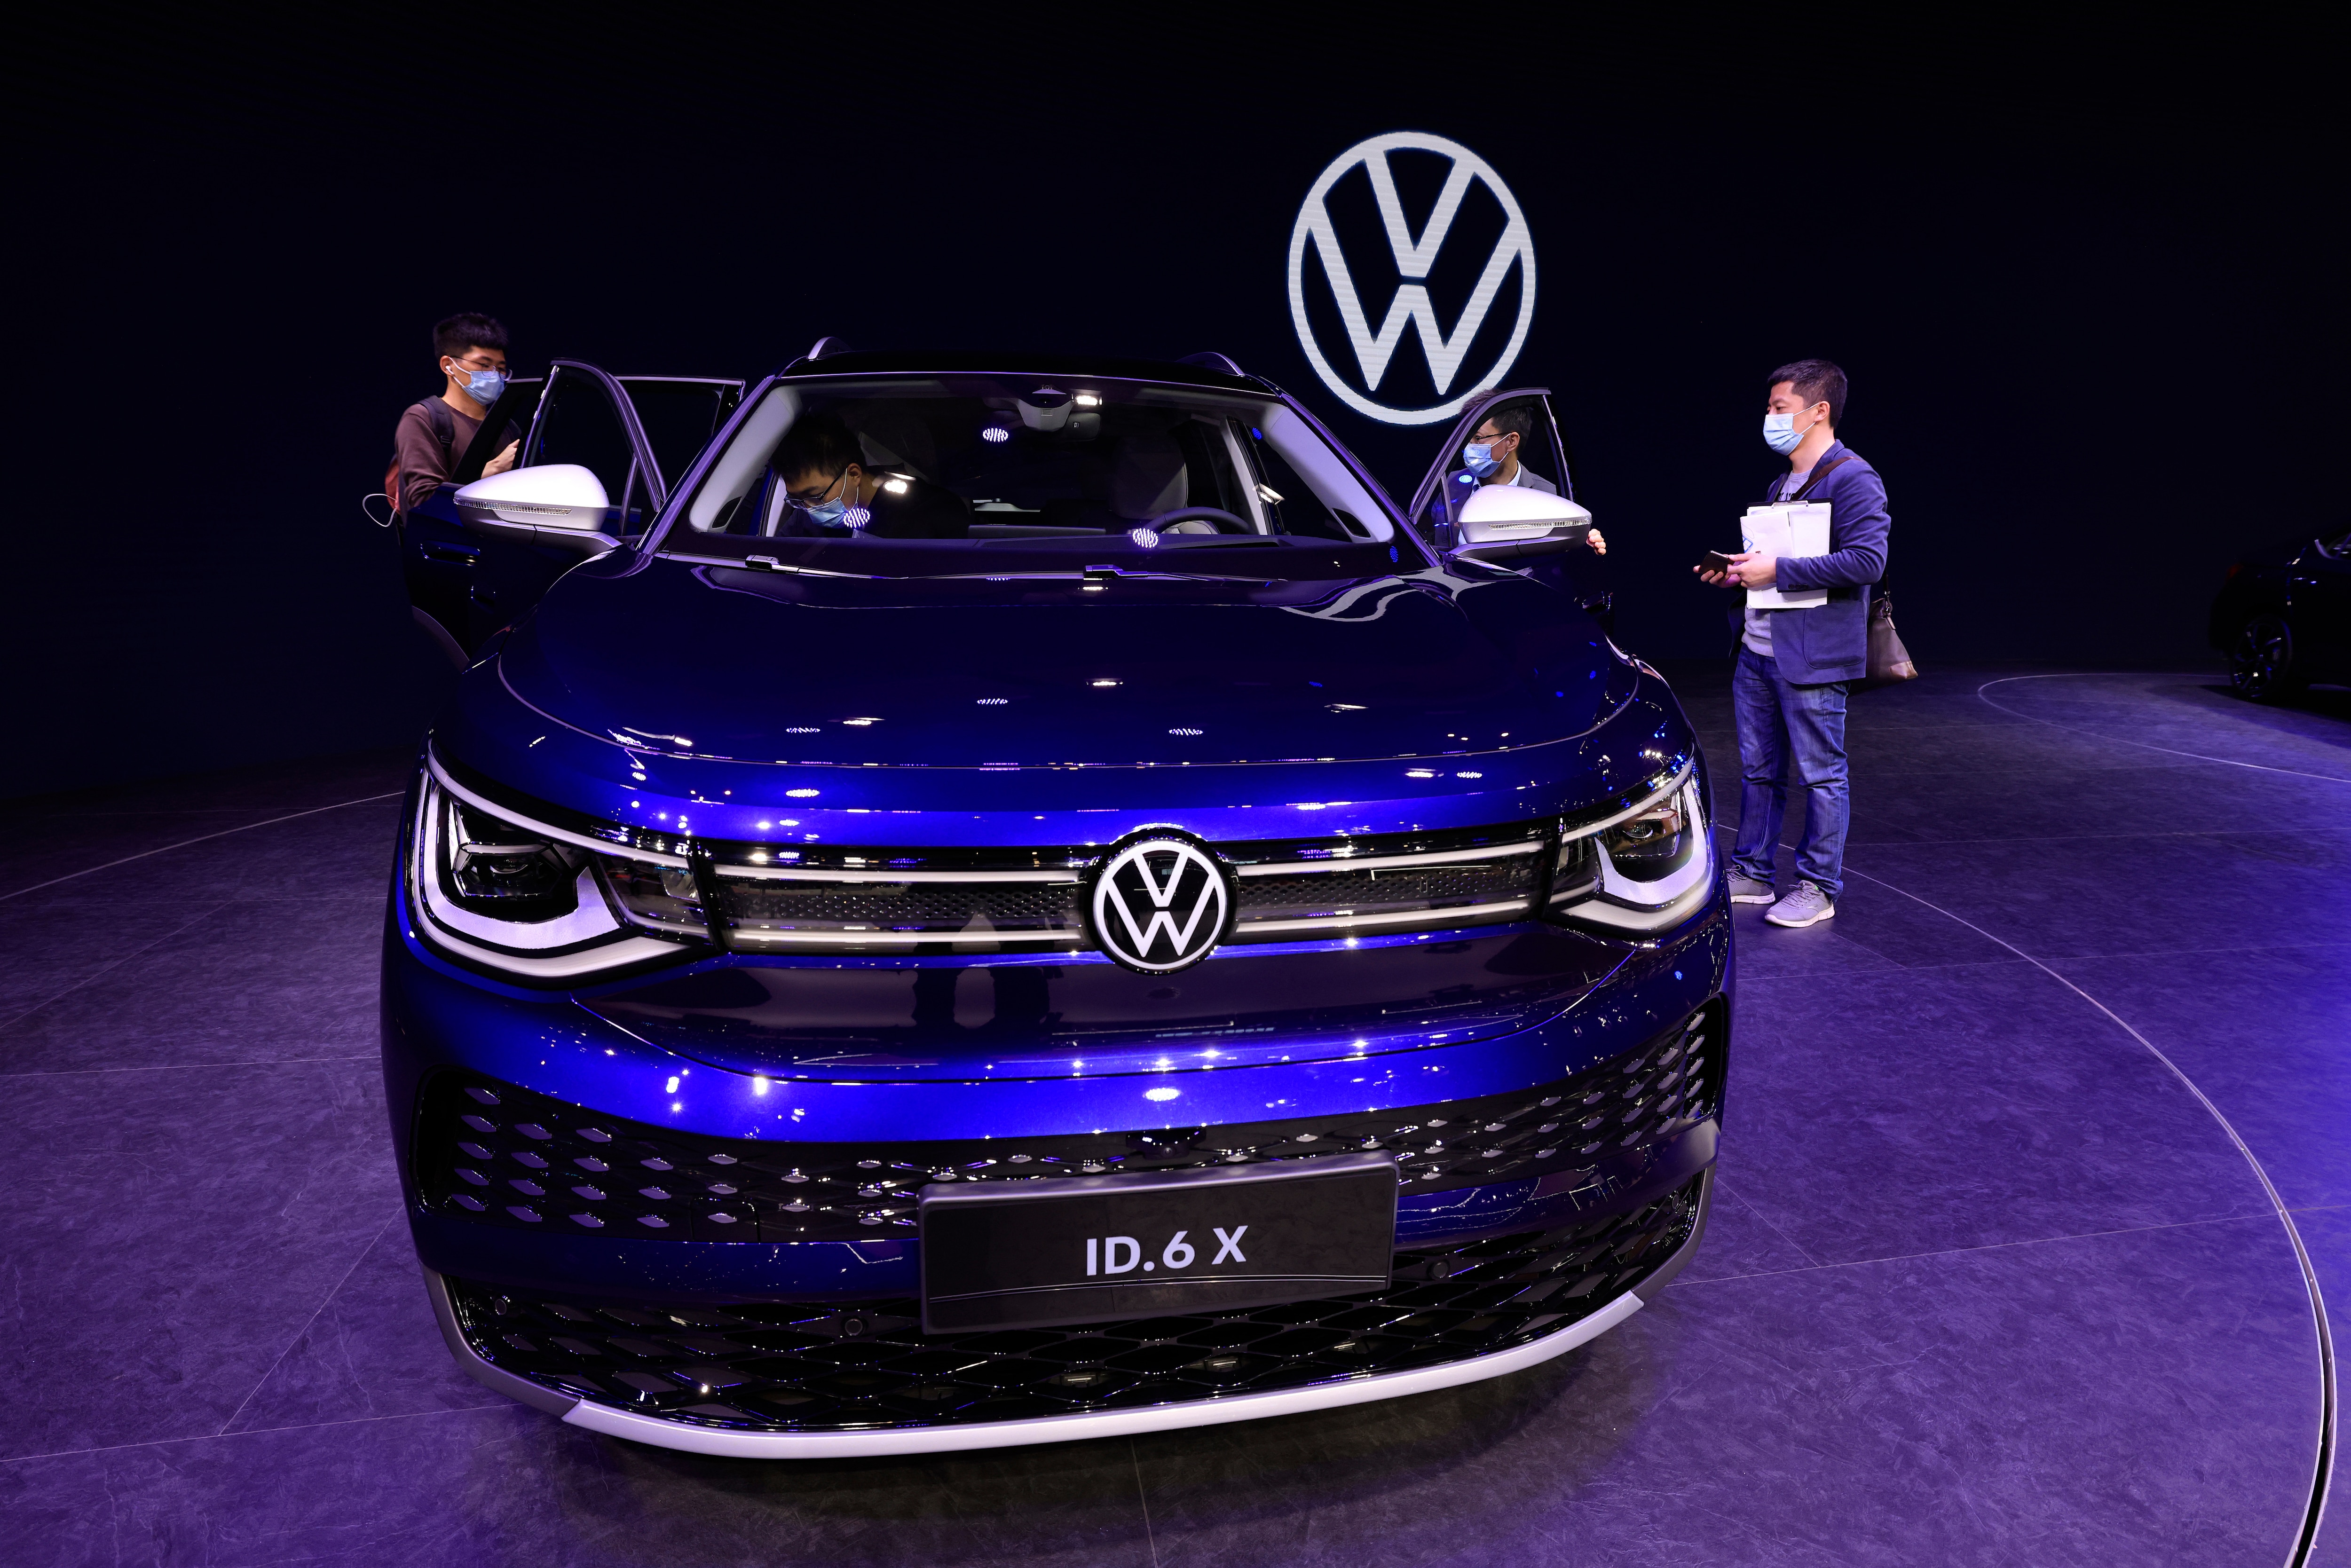 The latest electric car from Volkswagen, the ID.6 X, has been put on display at the Shanghai Auto Show 2021. A visitor can be seen sitting inside the car to check it out. (AP)